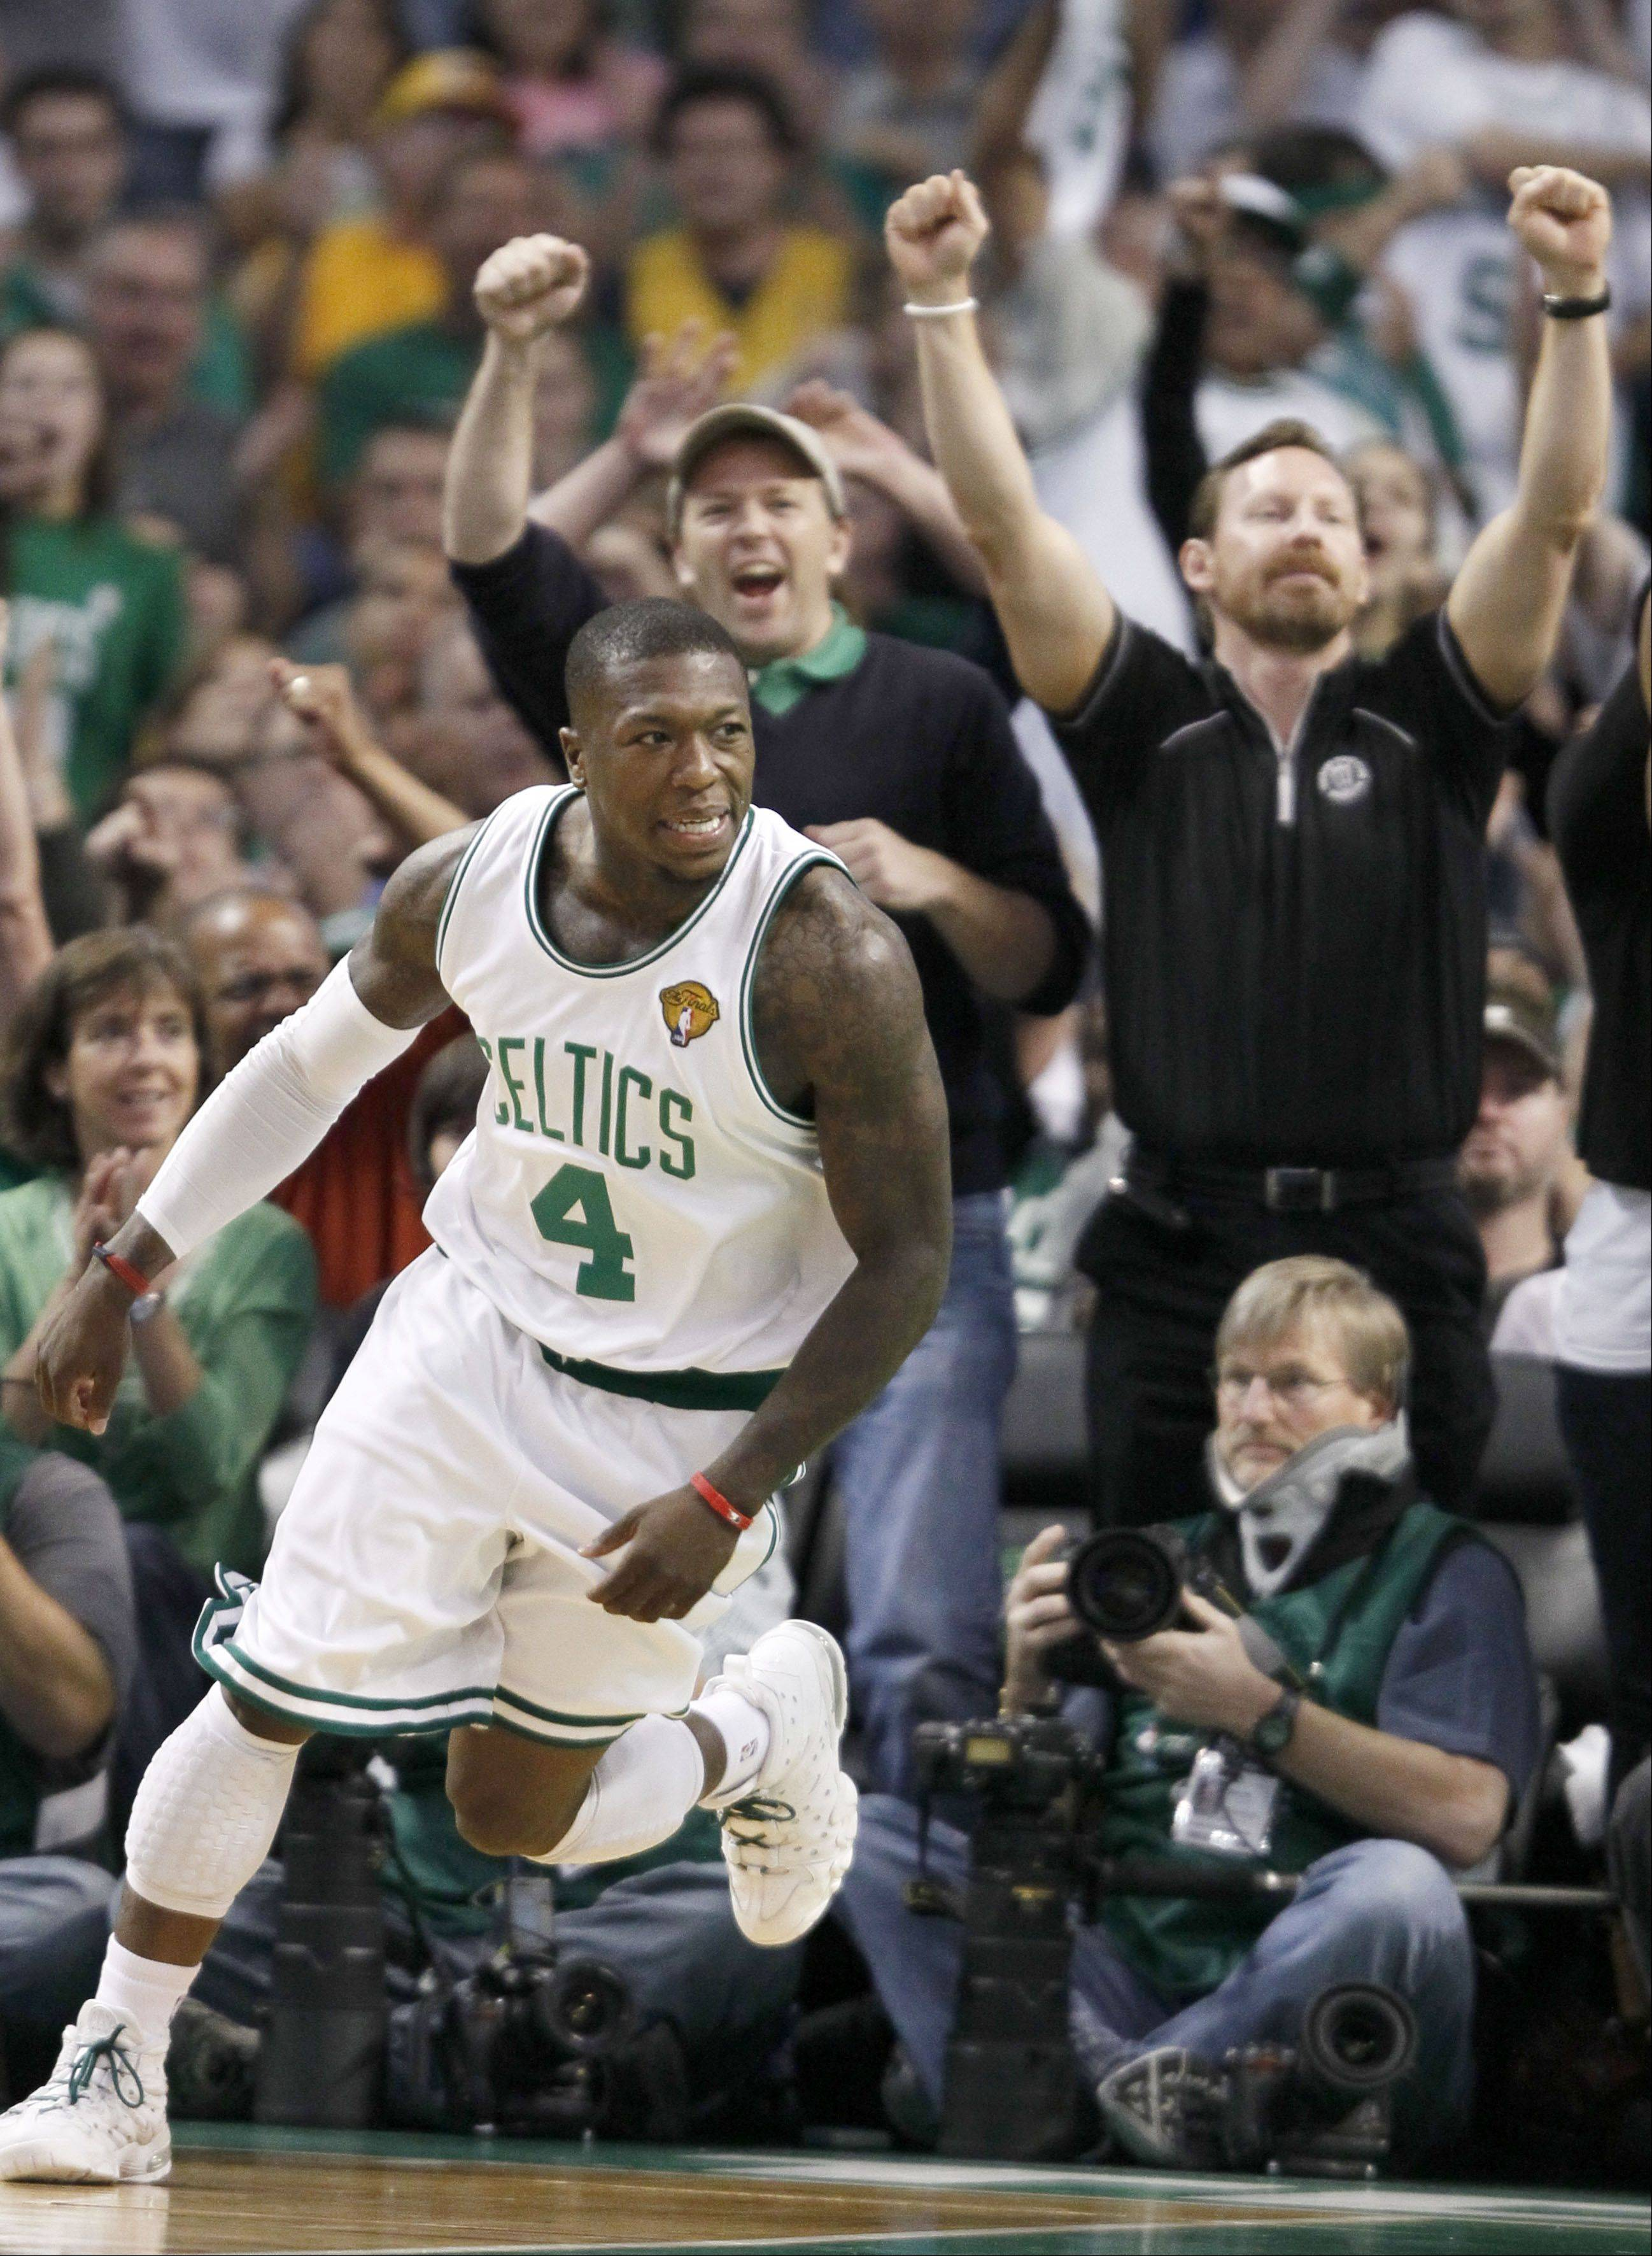 Nate Robinson, shown here playing with Boston, officially signed a one-year deal worth $1.1 million on Tuesday.